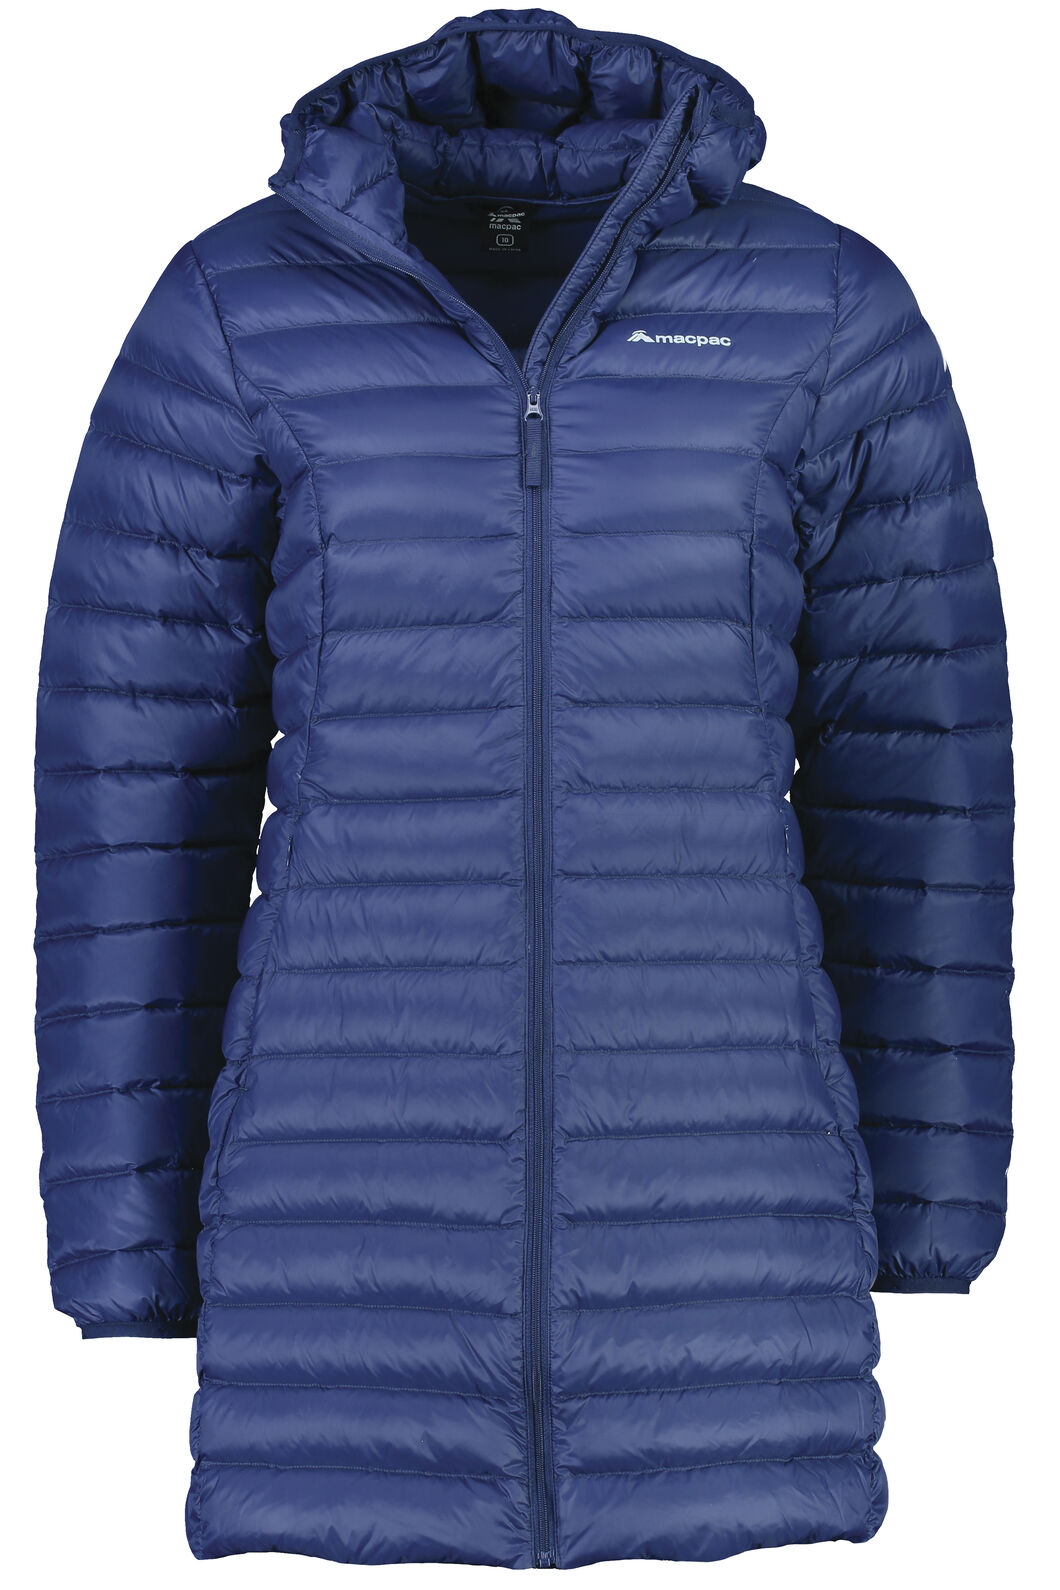 Macpac Uber Light Down Coat - Women's, Medieval Blue, hi-res